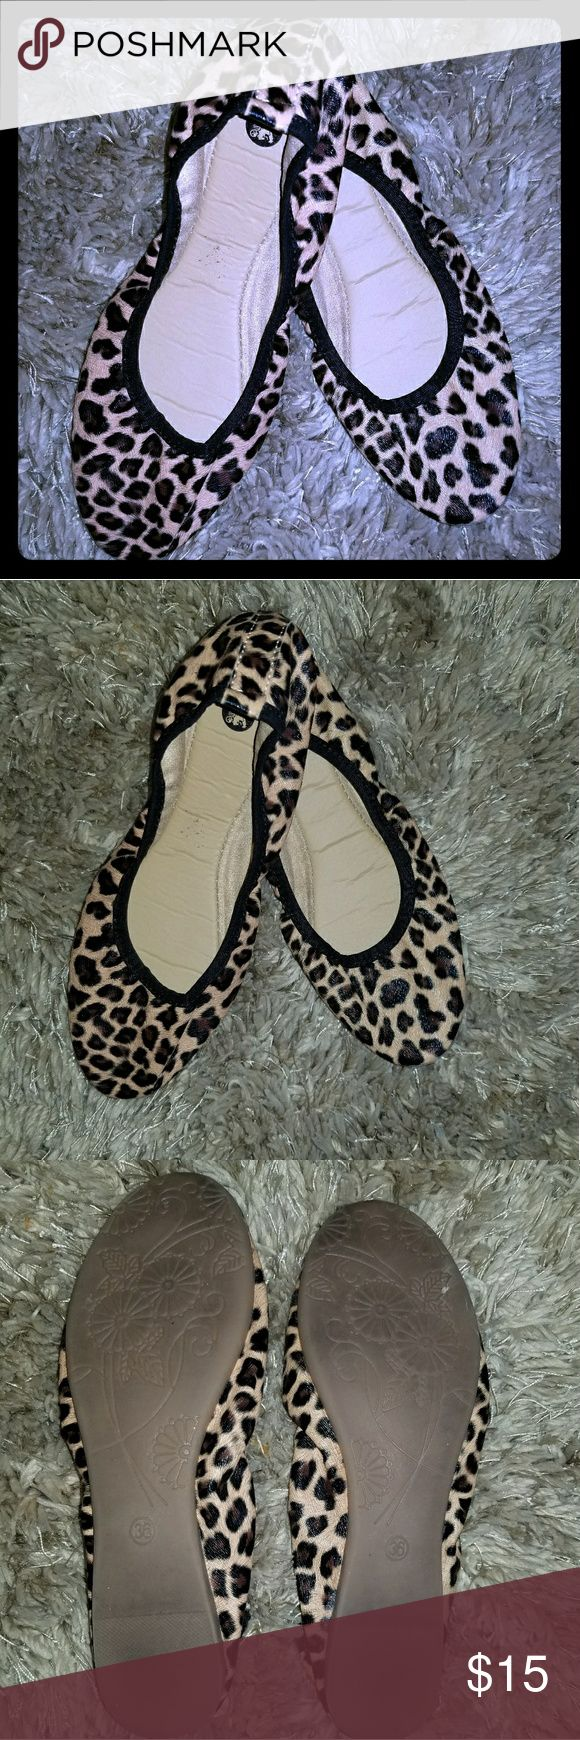 Leopard Print Ballet Flats Caribbean Cartel slip on ballet slippers. In excellent condition. Only worn once. Known for comfort with style! Leopard Print design. Woman's size 6.  Woman's fashion, shoes, casual, junior's, slippers, spring, summer, animal print, cheetah print, jungle, cat, brown, black, tan, cream, light brown, chocolate, camel, nude   BUNDLE AND SAVE Caribbean Cartel Shoes Flats & Loafers